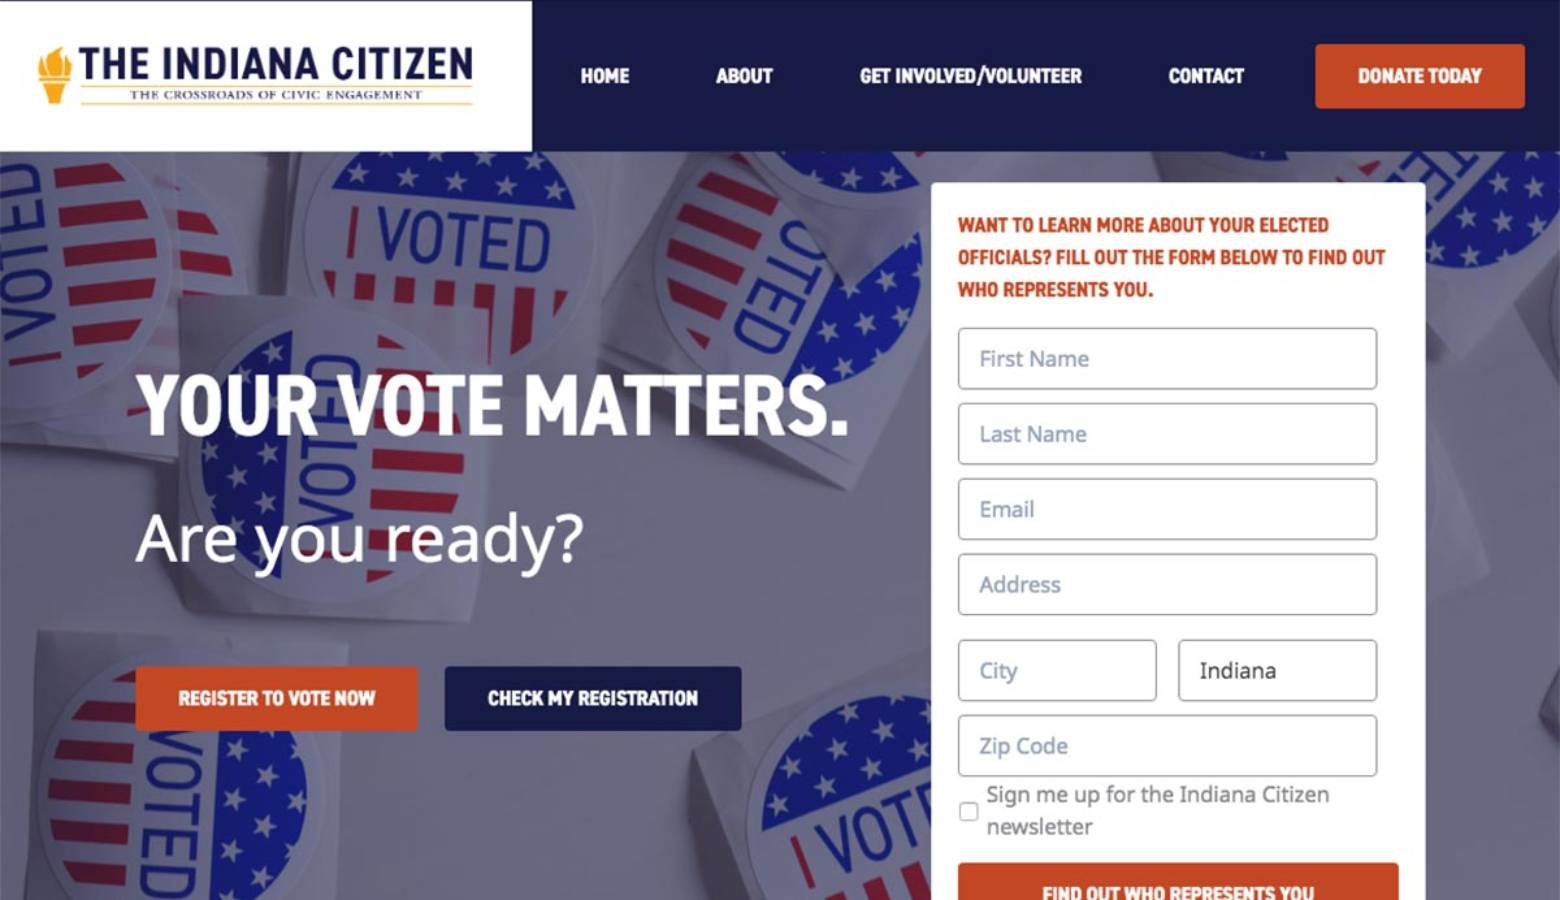 A new non-profit hopes to turn around Indiana's low voter registration and turnout with the launch of a voter engagement effort called the Indiana Citizen. (indianacitizen.org)